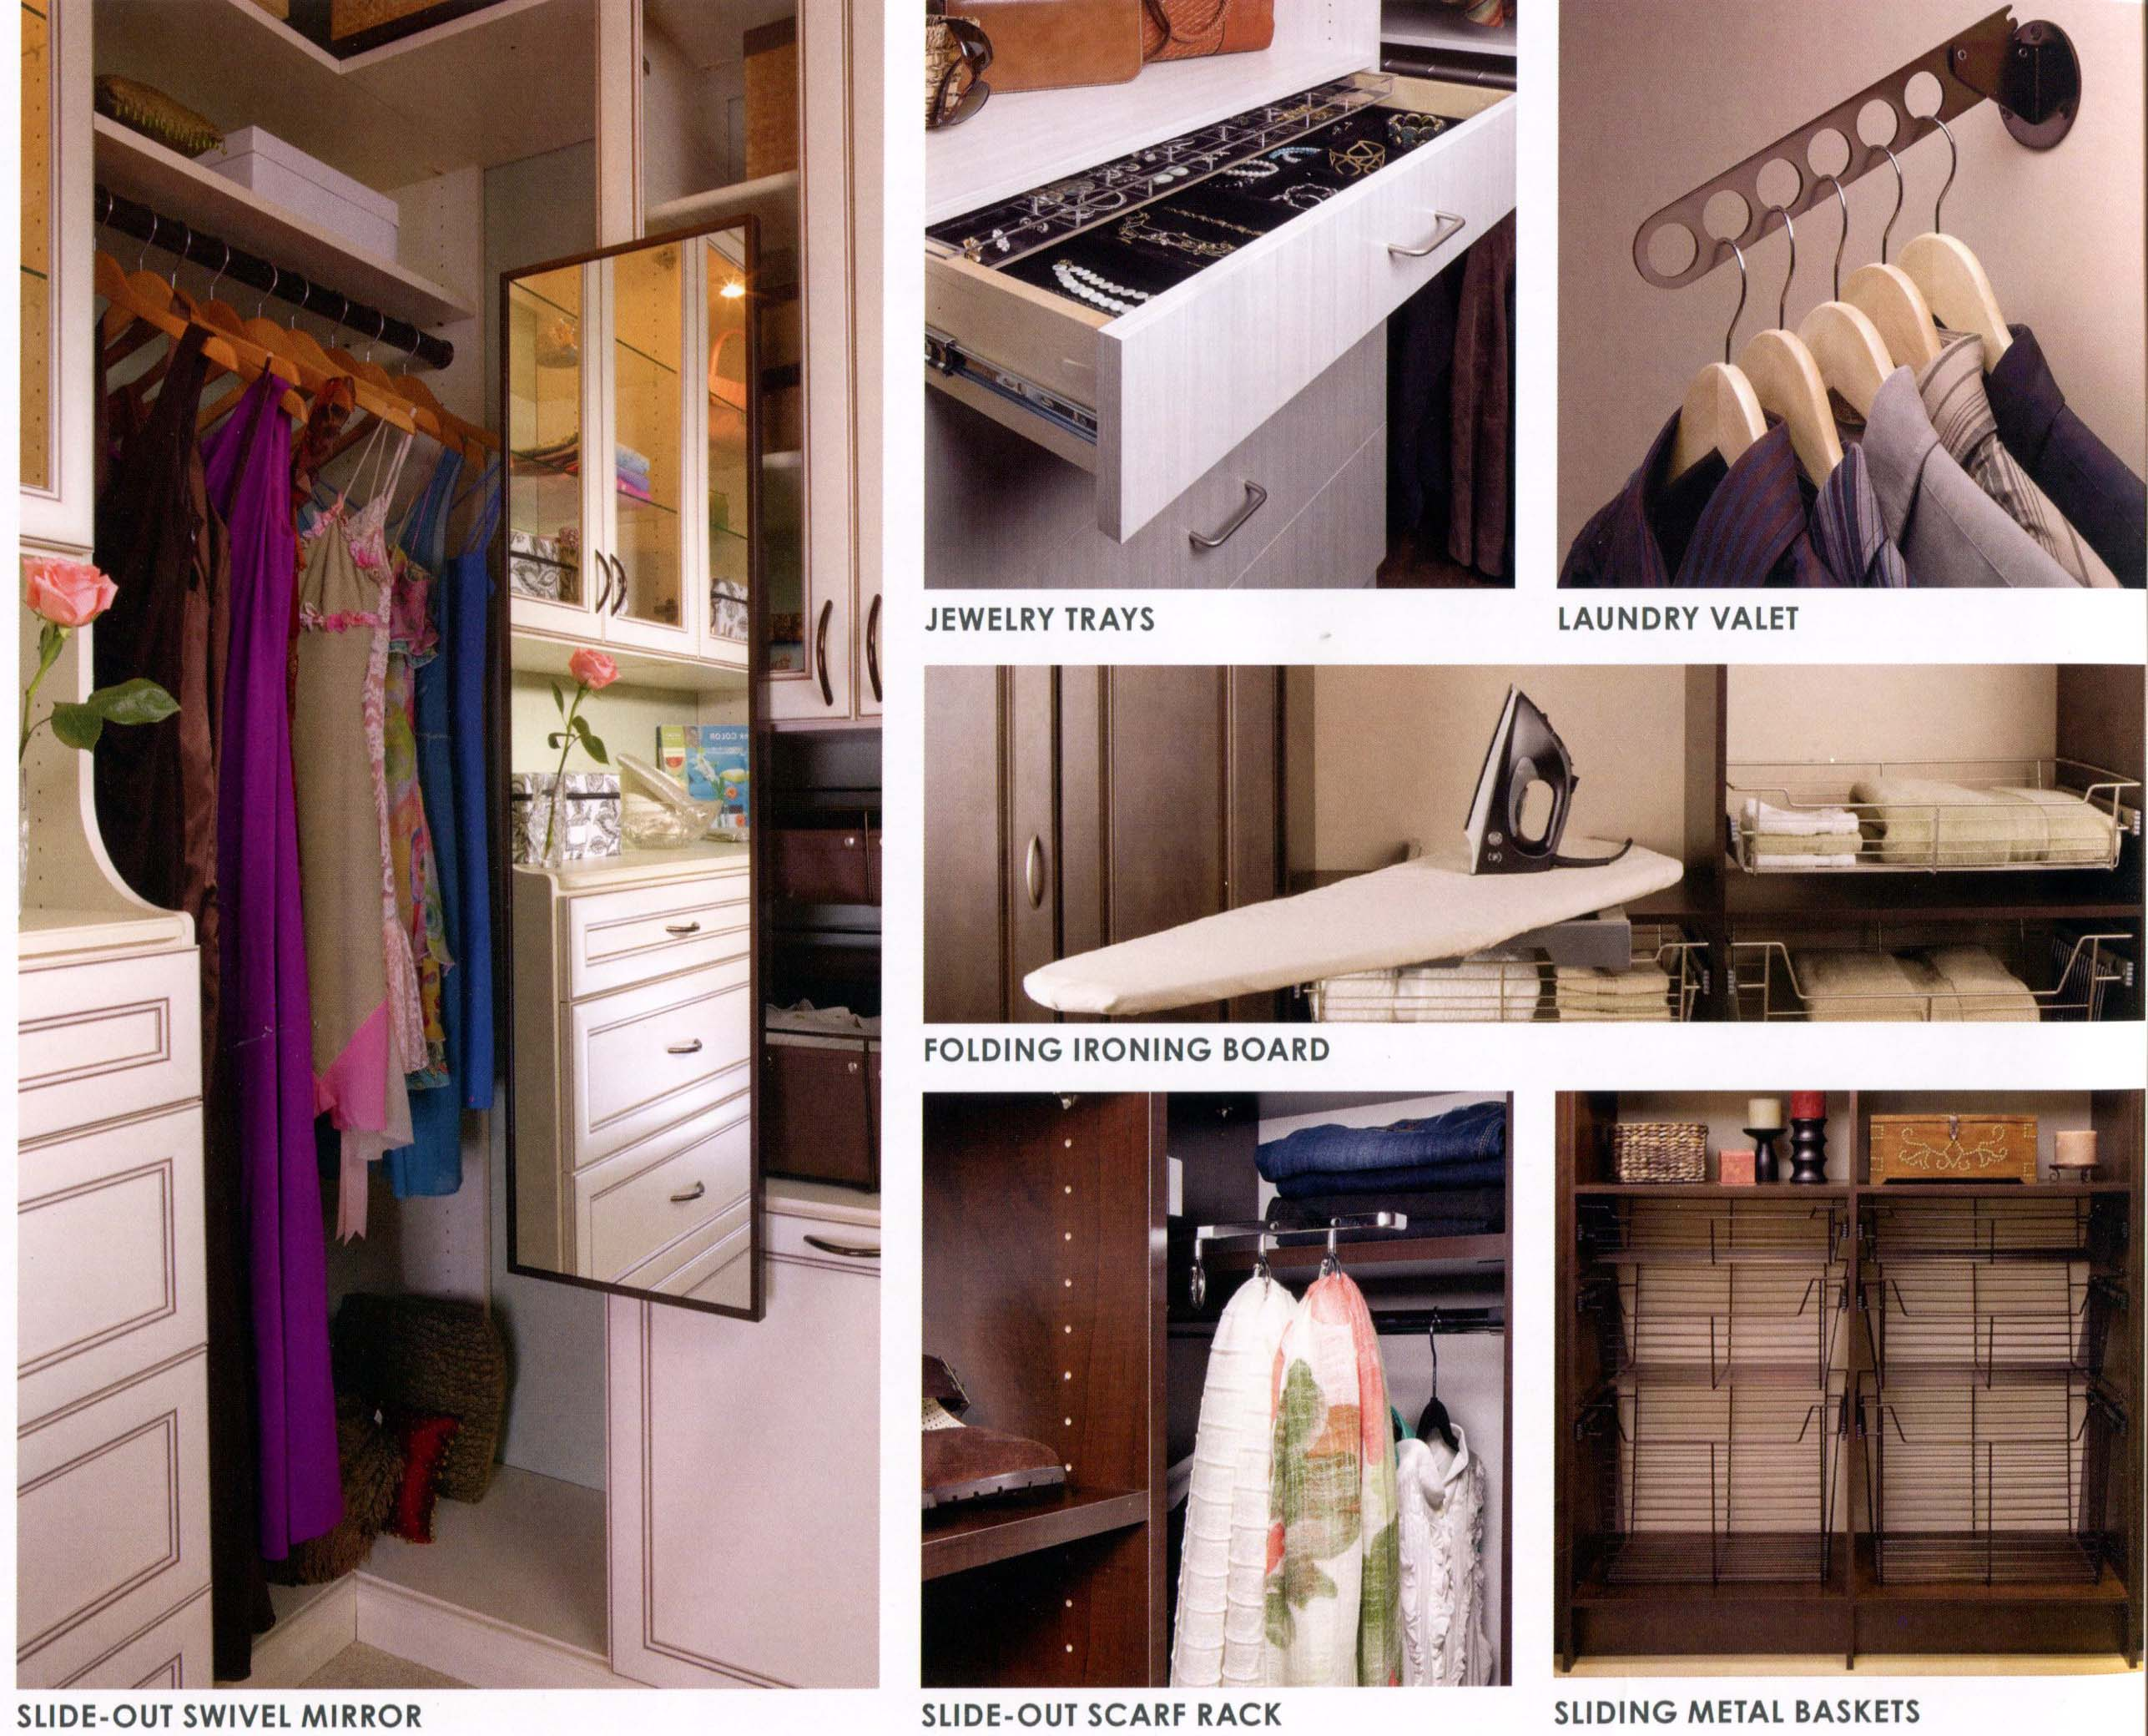 wood closet pressroom gg club hunt image dev gallery living wardrobe mode valet room